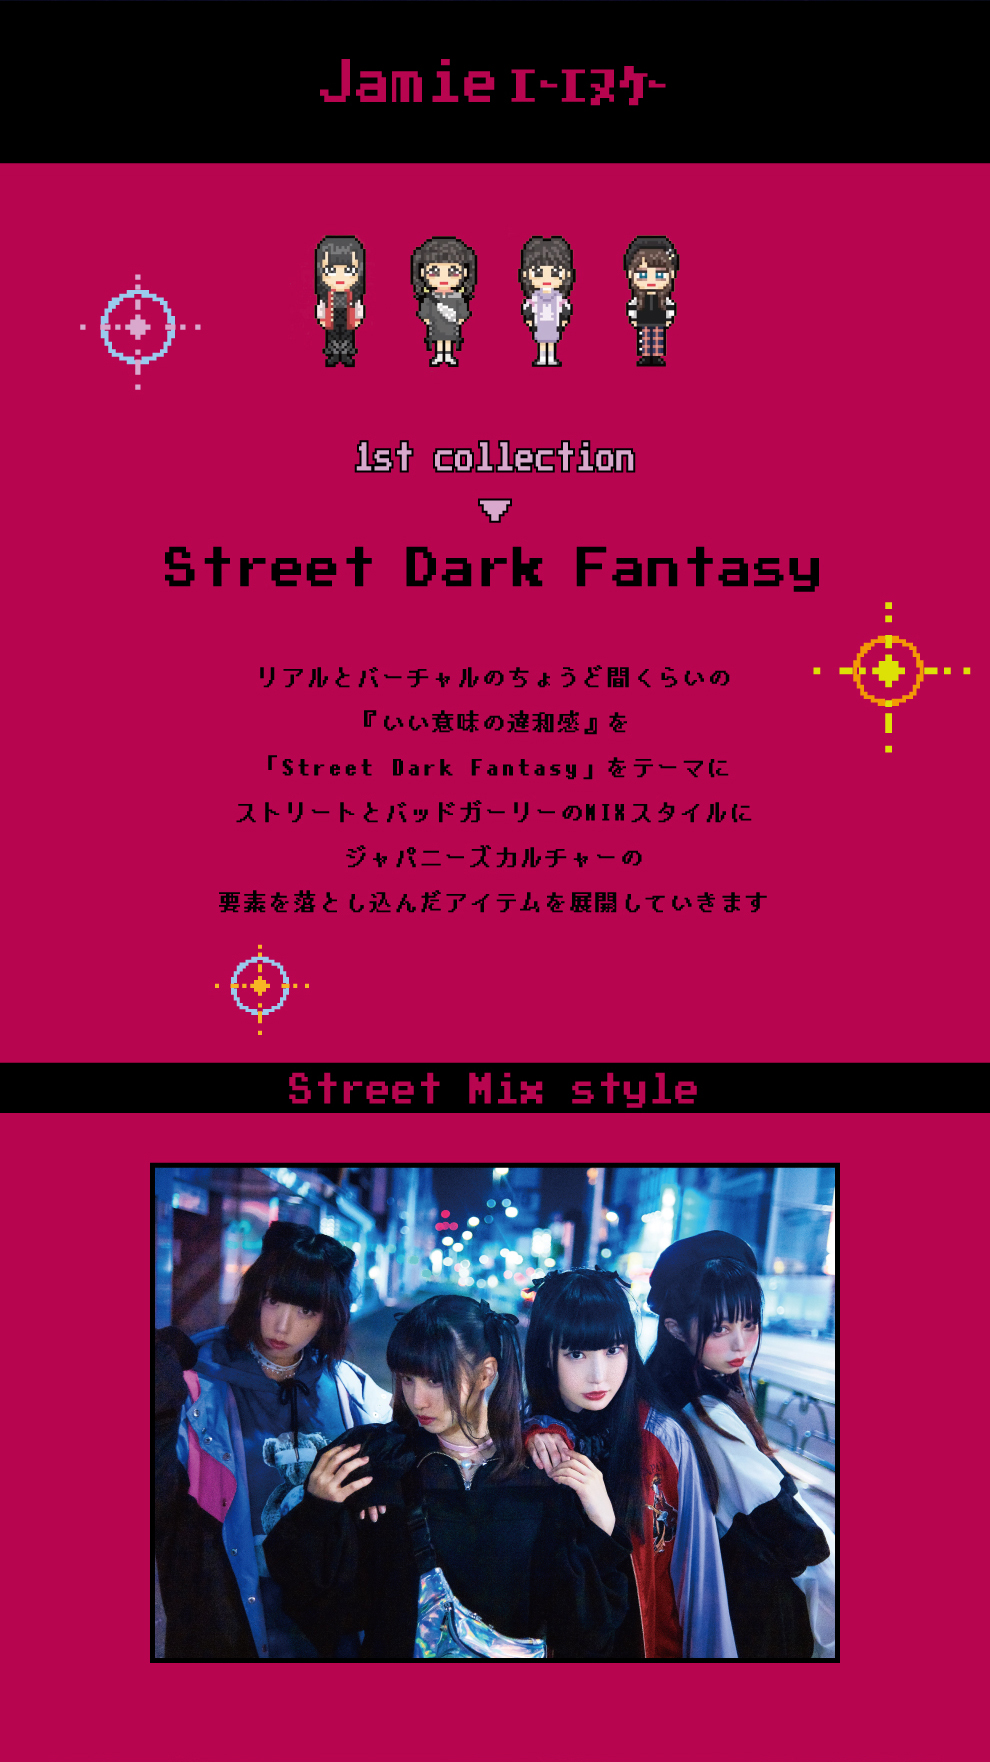 Jamieエーエヌケー Street Dark Fantasy 1st Collection